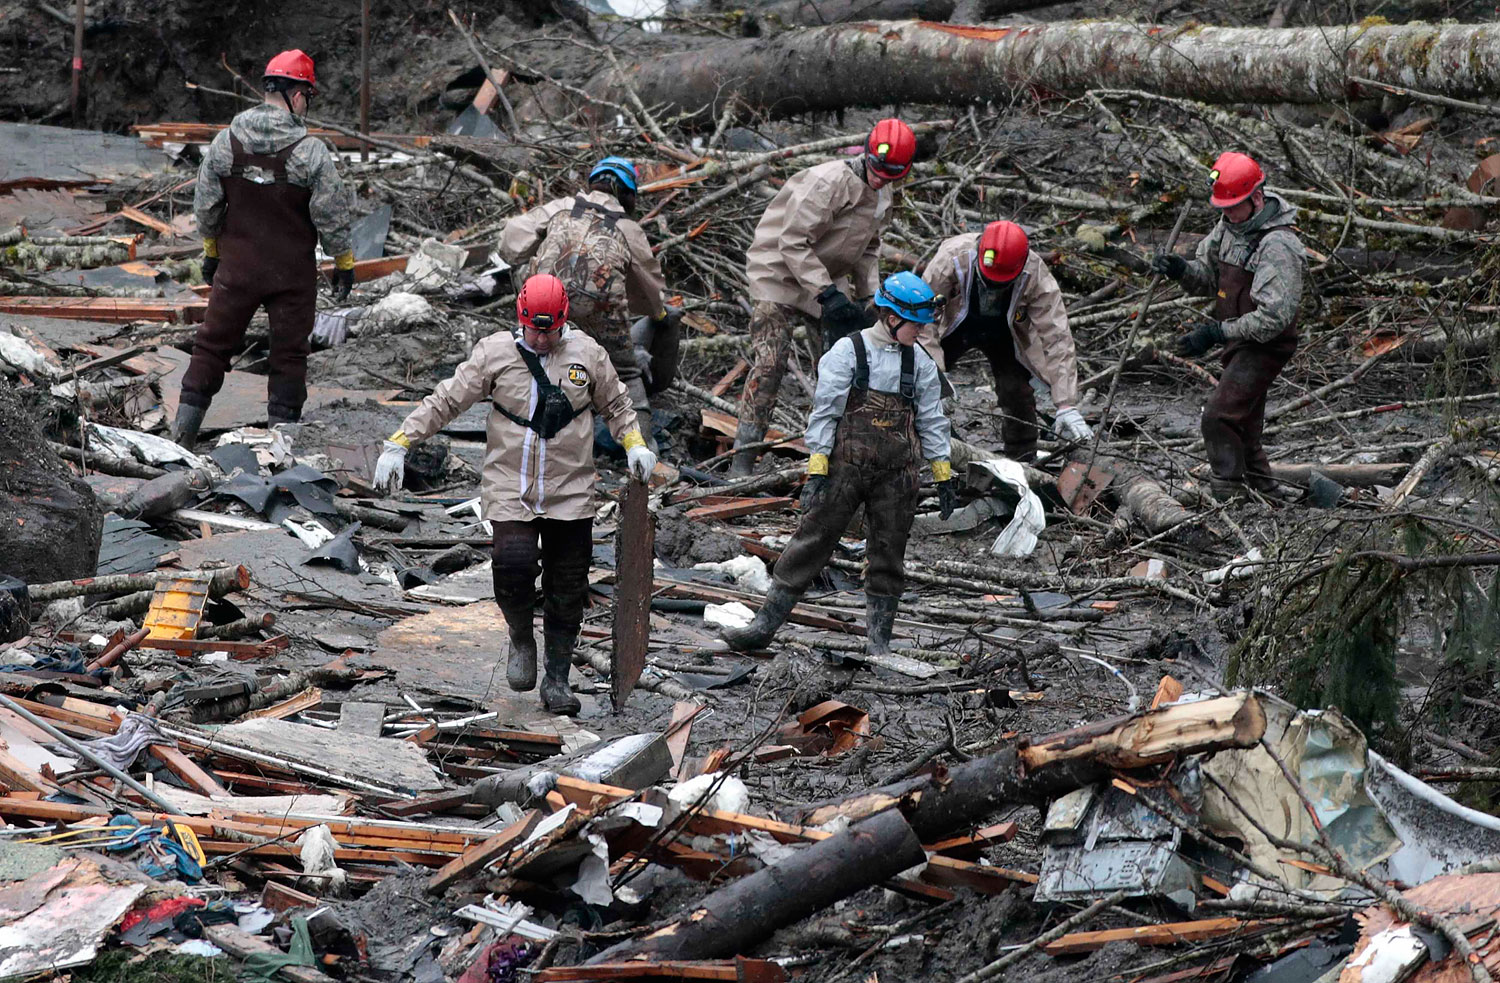 Workers search for victims in a massive mudslide in Oso, Washington March 28, 2014.